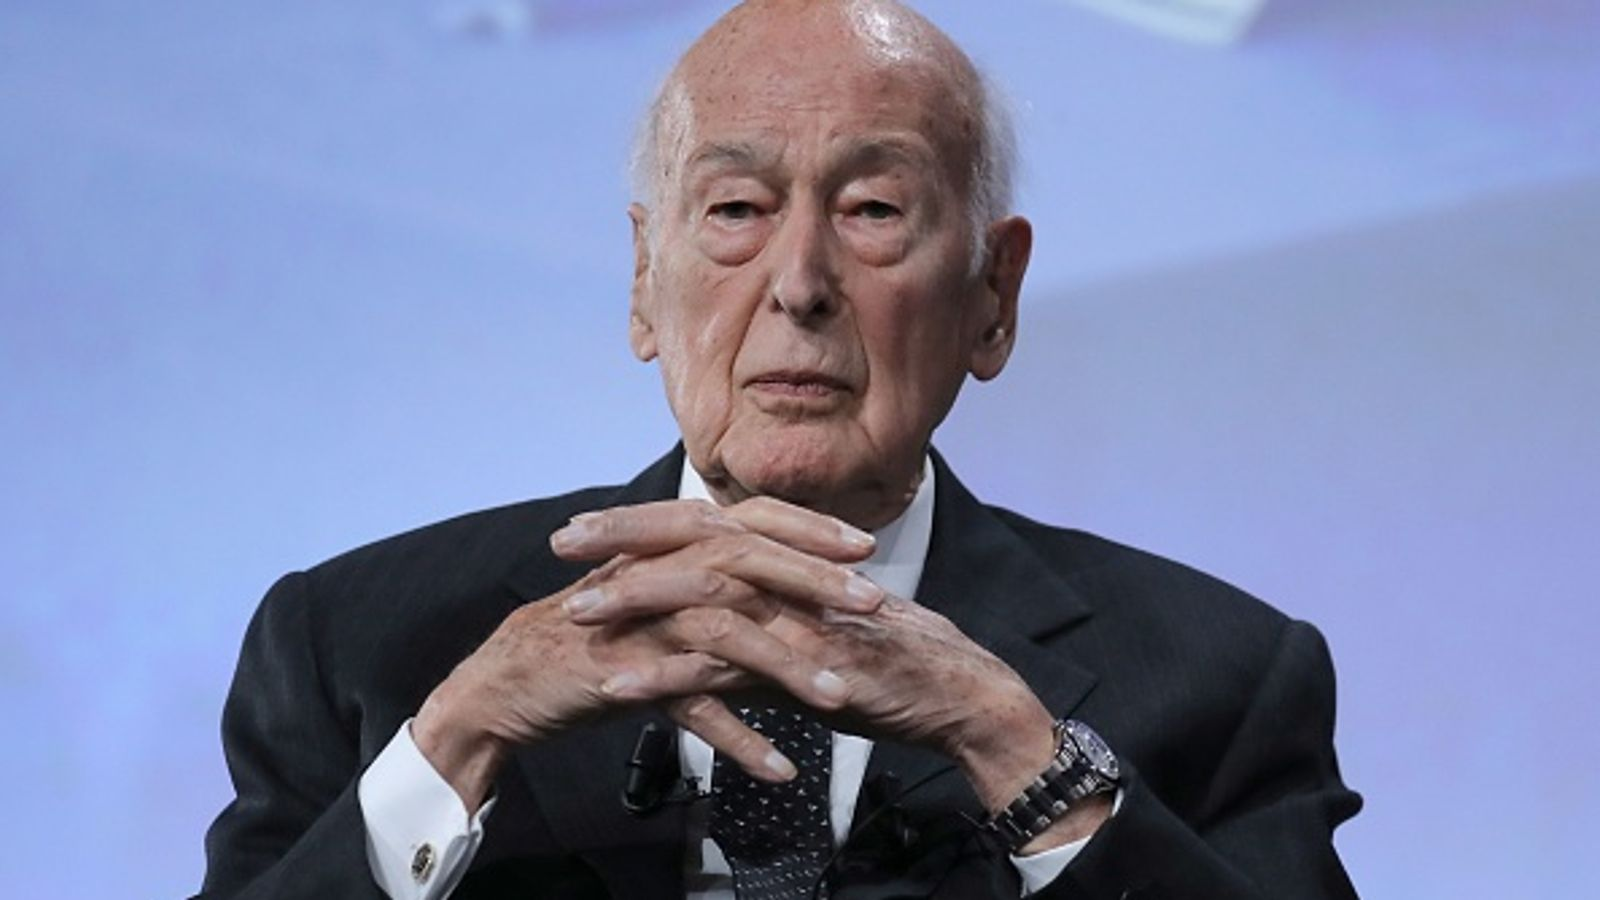 Valery Giscard d'Estaing: Former French president dies age 94 after catching coronavirus